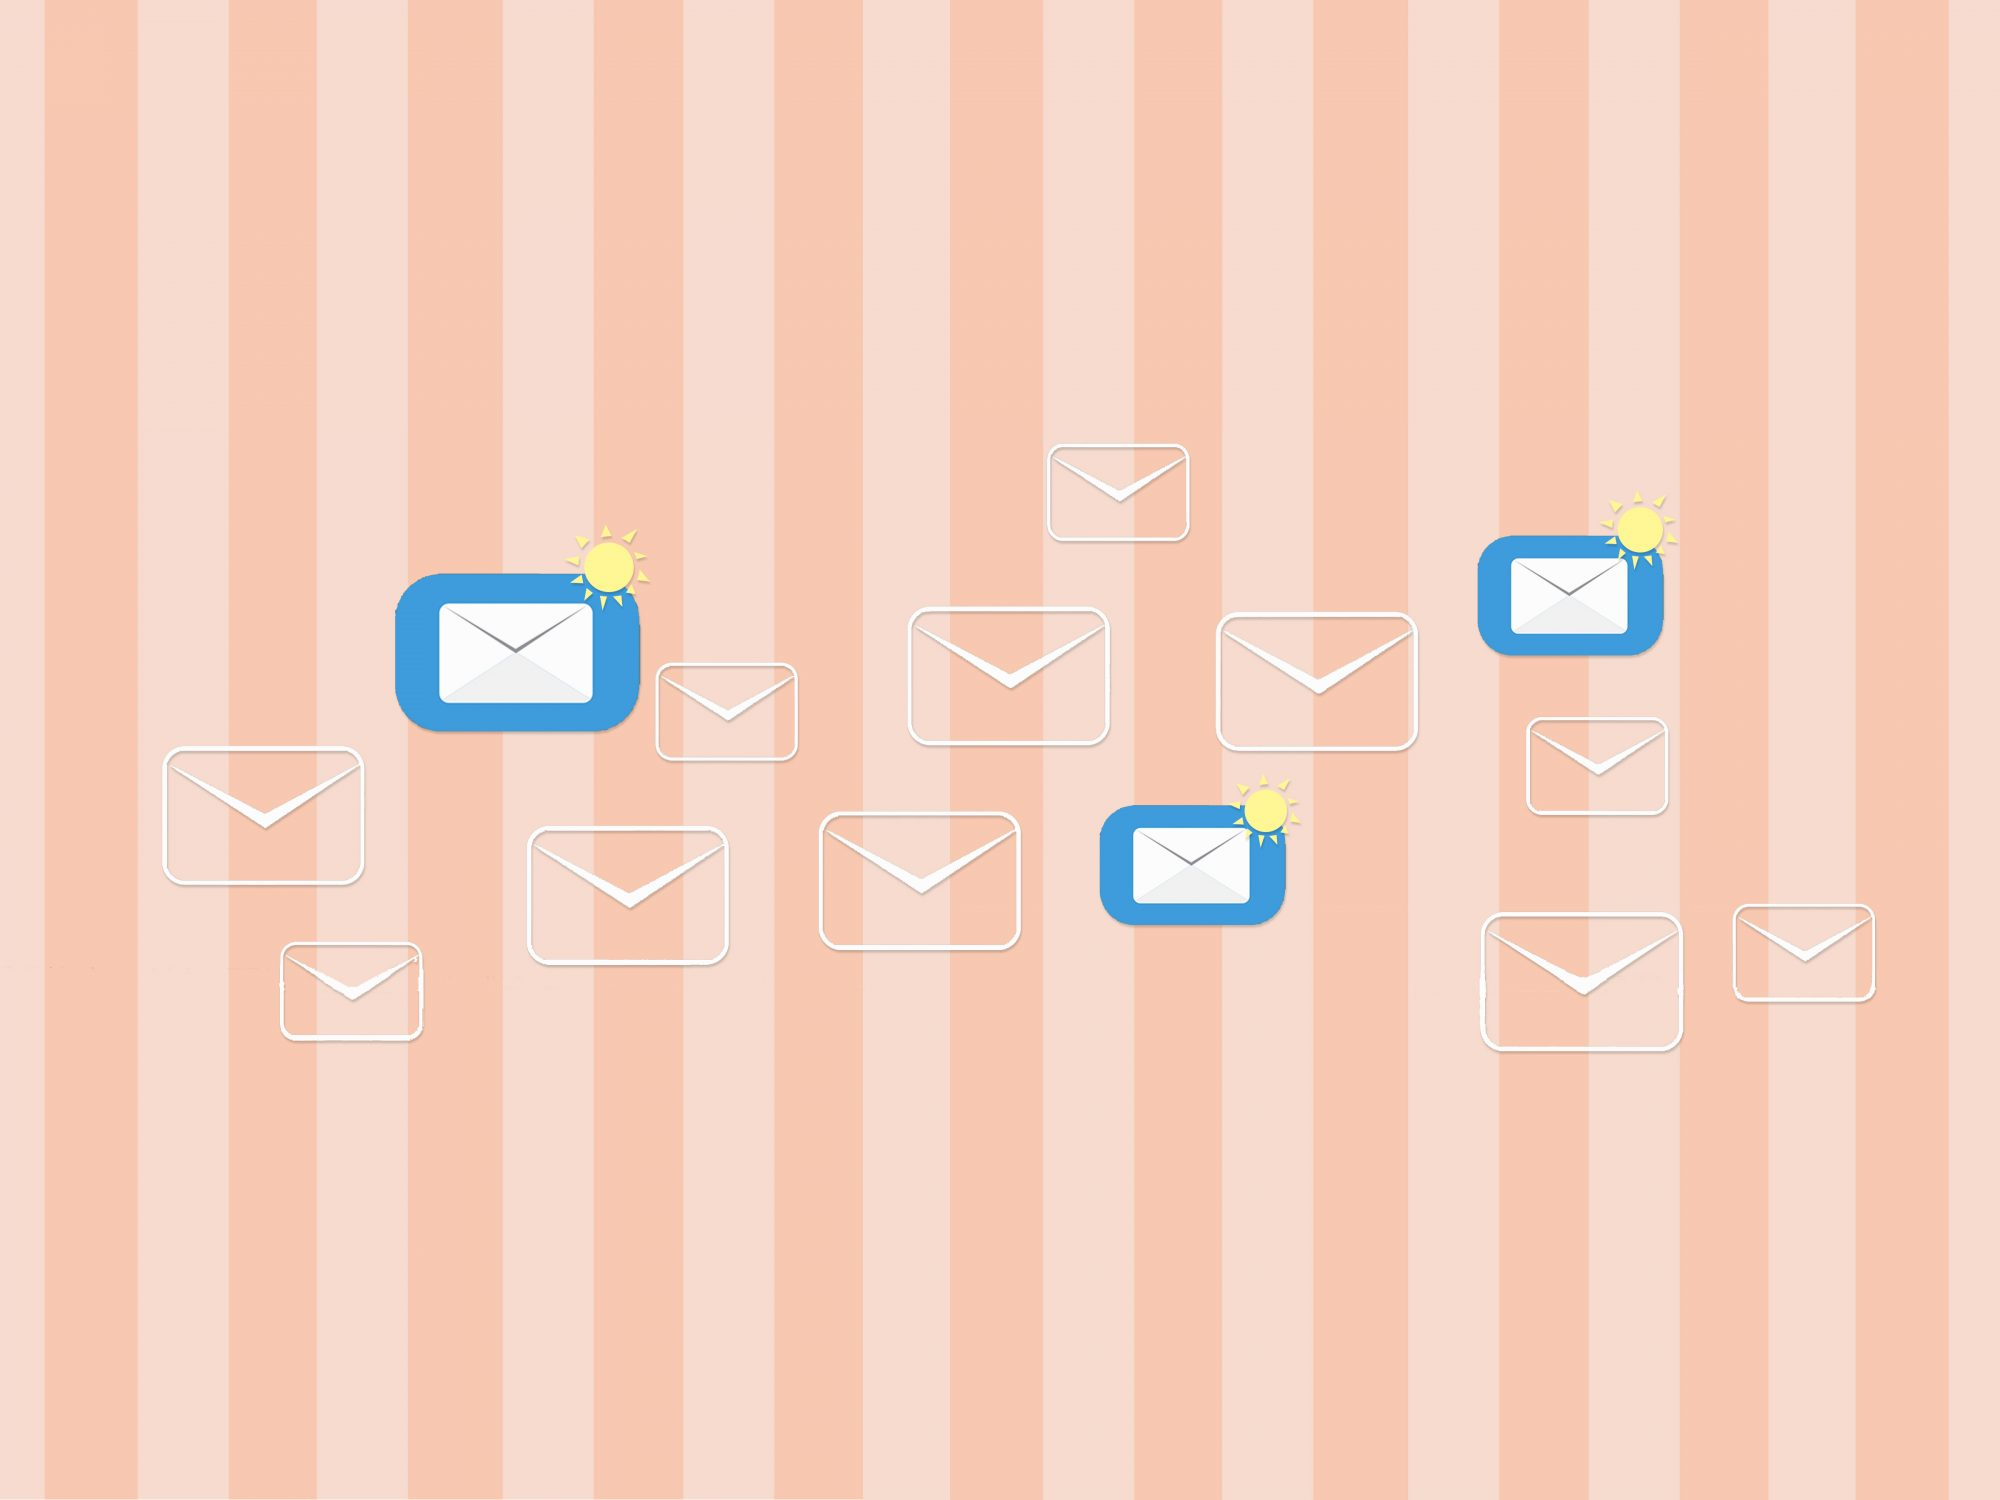 What to include in an out-of-office email: envelopes on a striped background